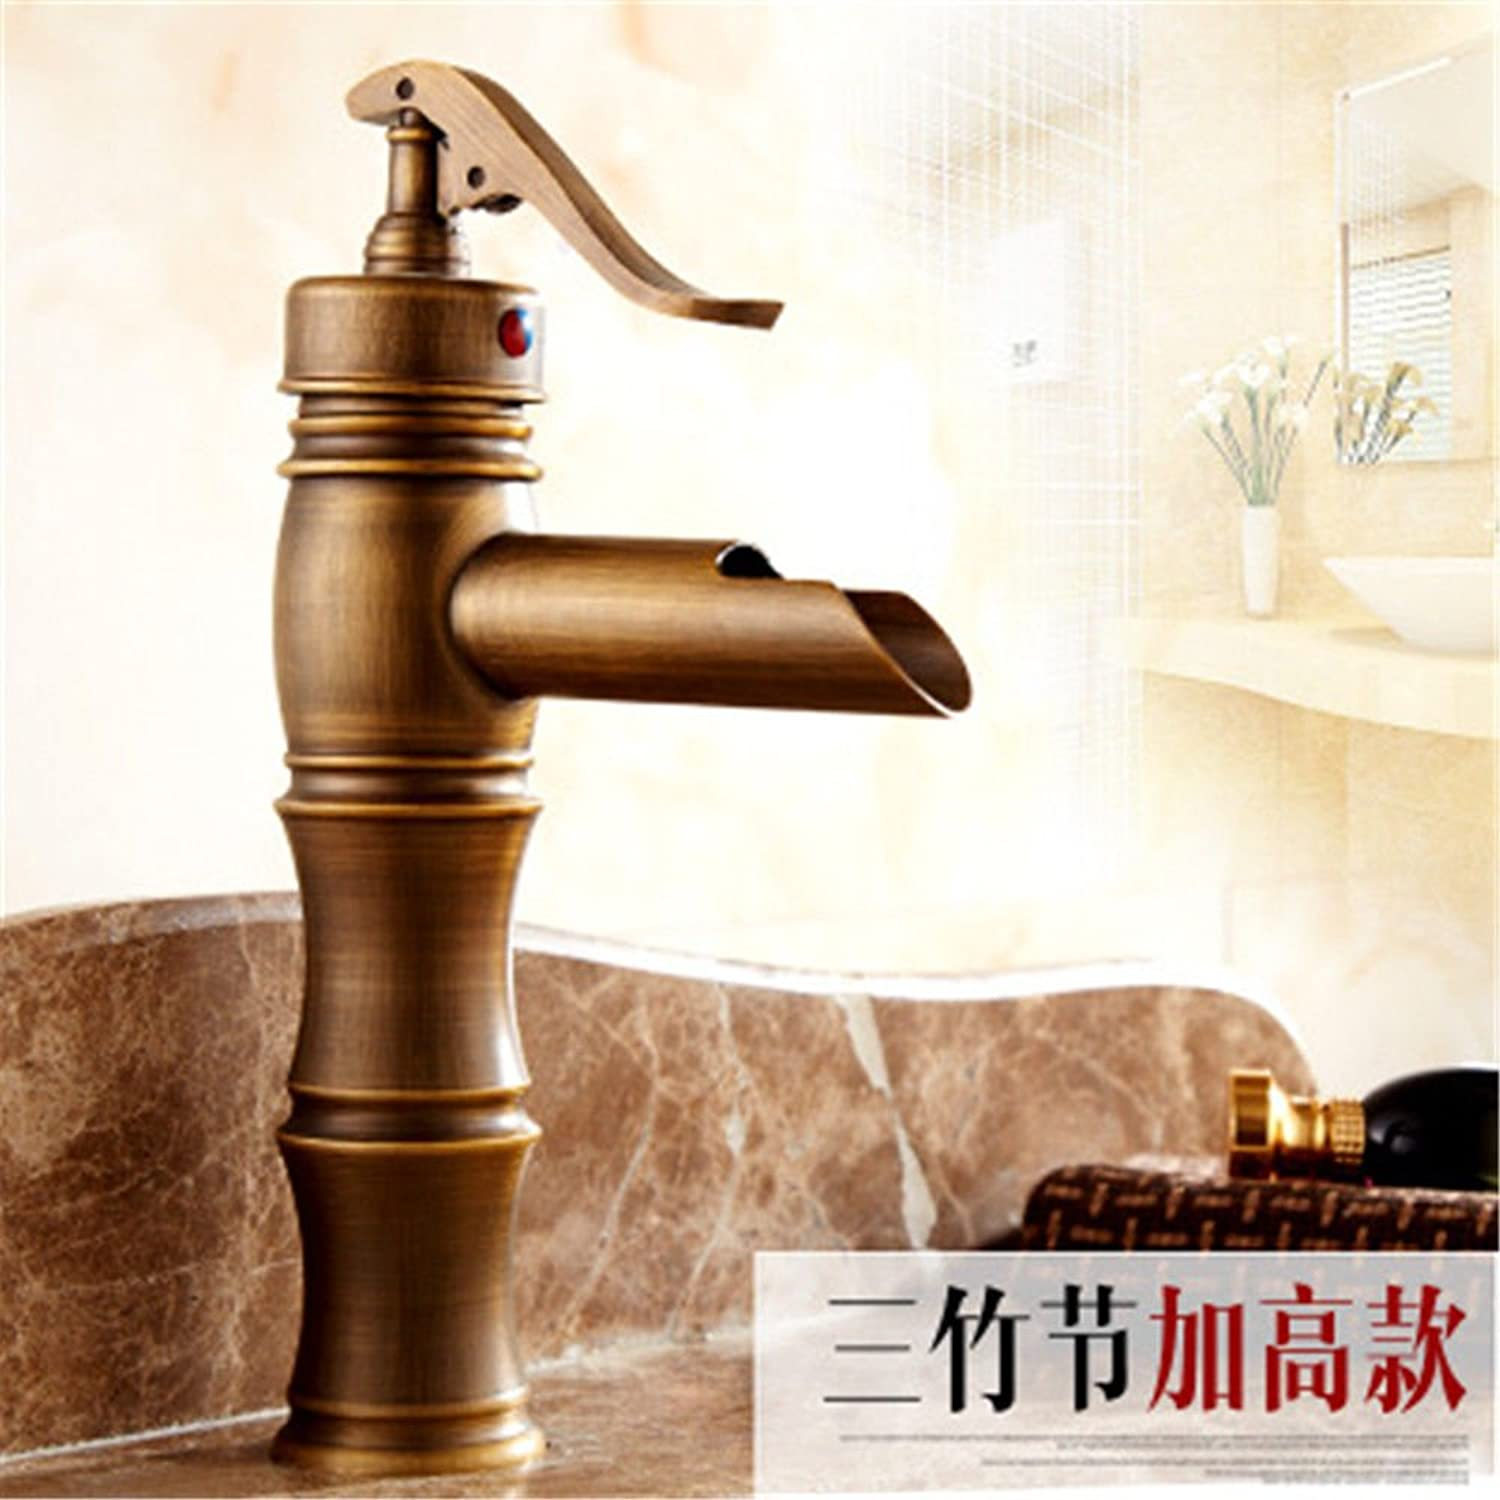 Hlluya Professional Sink Mixer Tap Kitchen Faucet The brass faucets antique faucet basin faucet with high water faucet waterfall faucet hot and cold-water faucet single lever,A,3